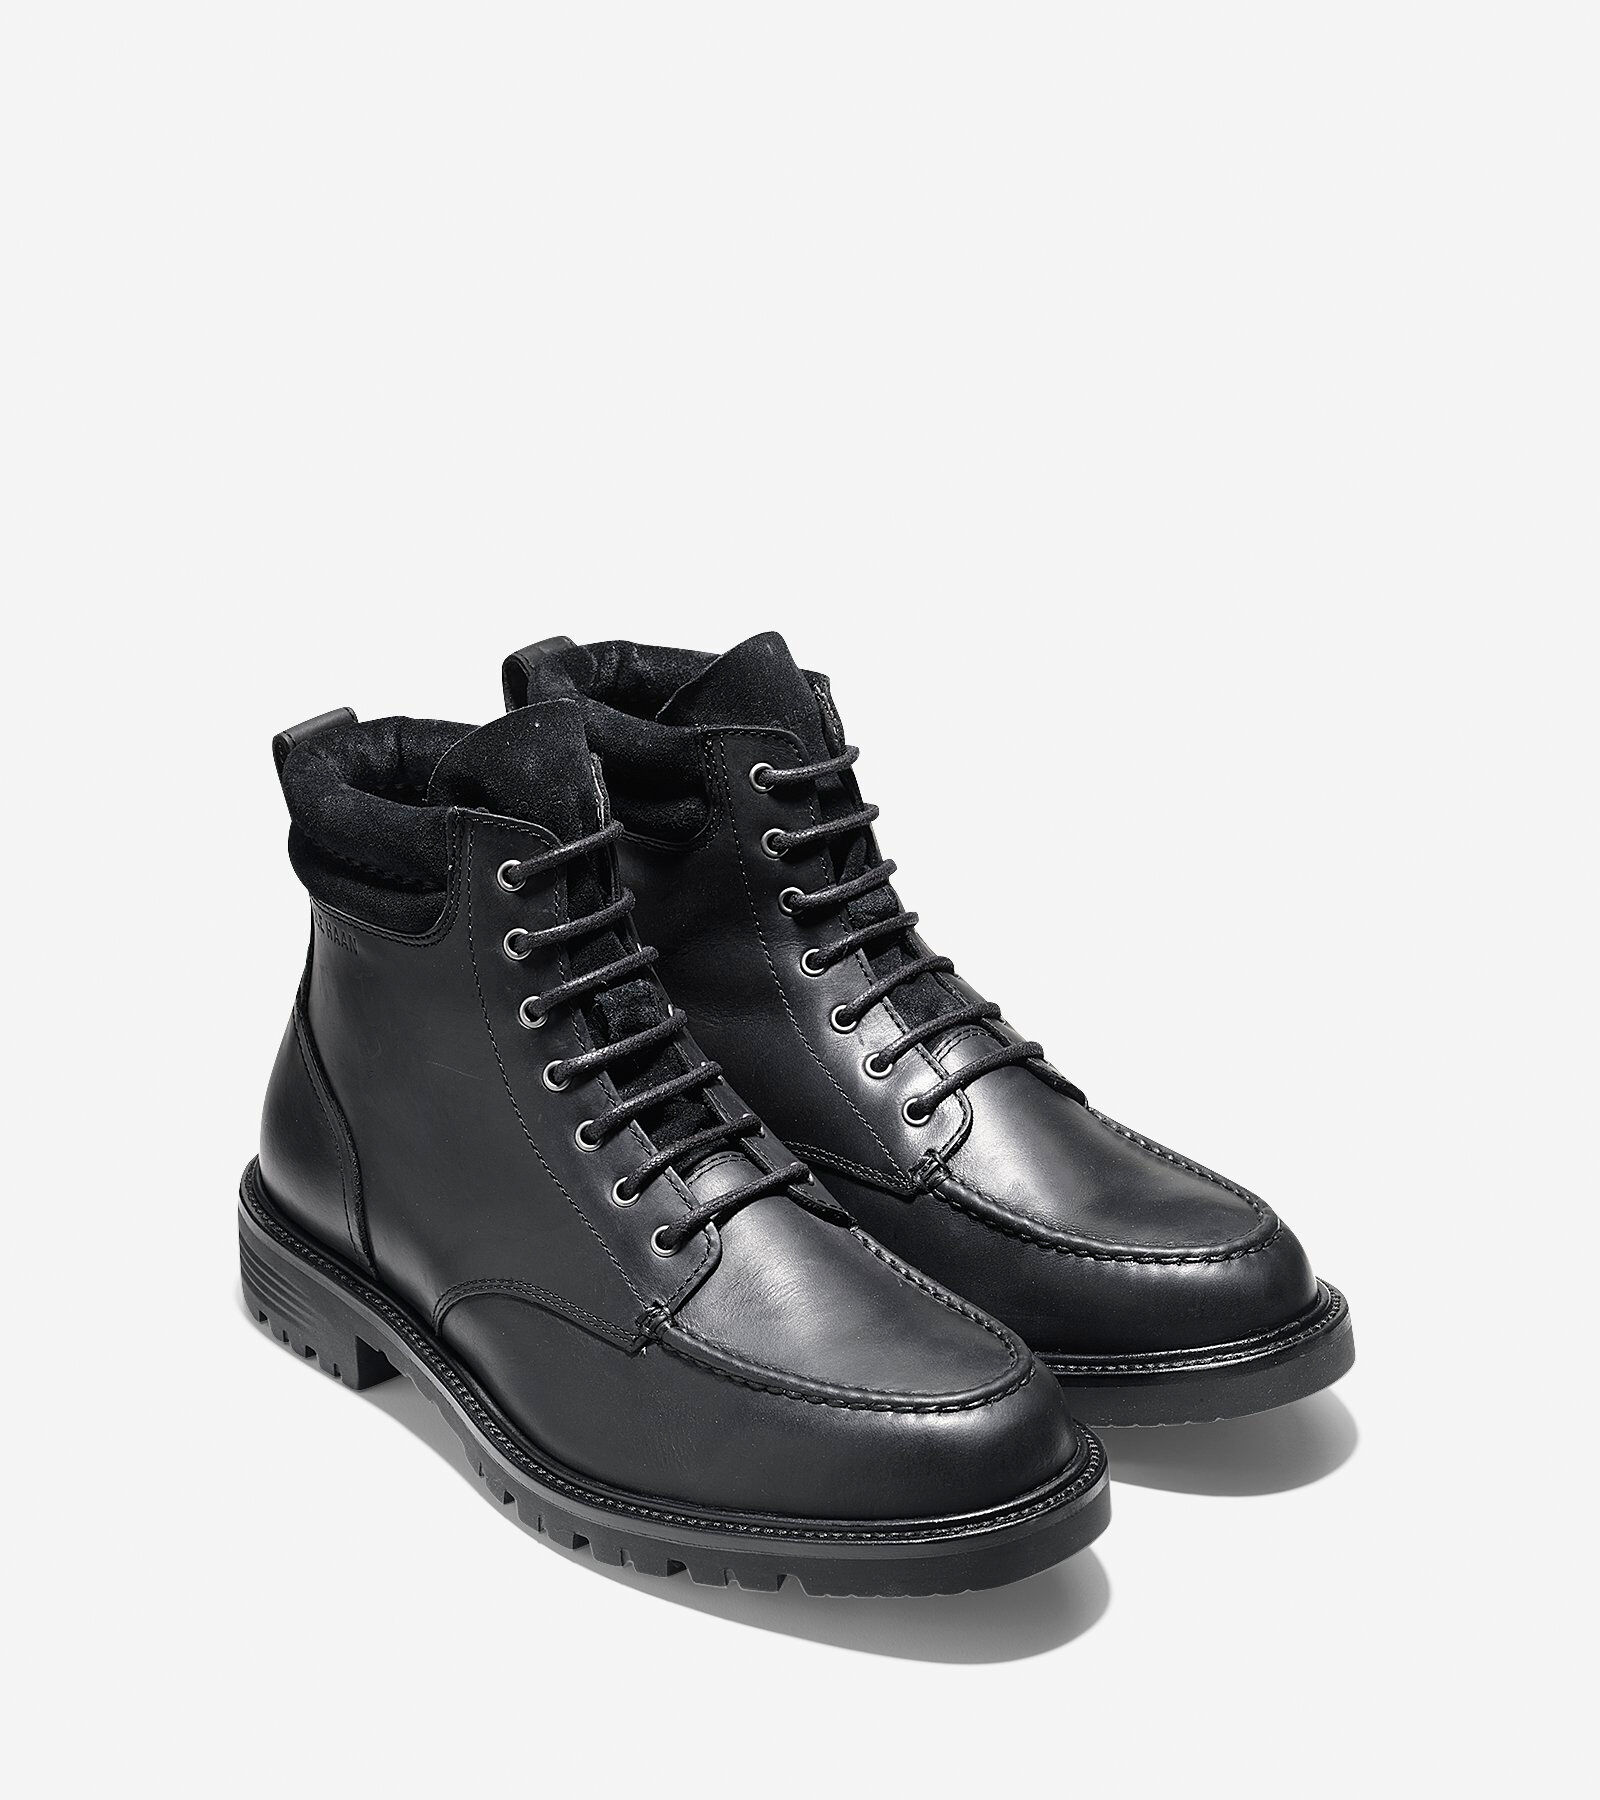 Cole Haan Grantland 6 Inch Lace-Up Water Proof BTAGoiwi